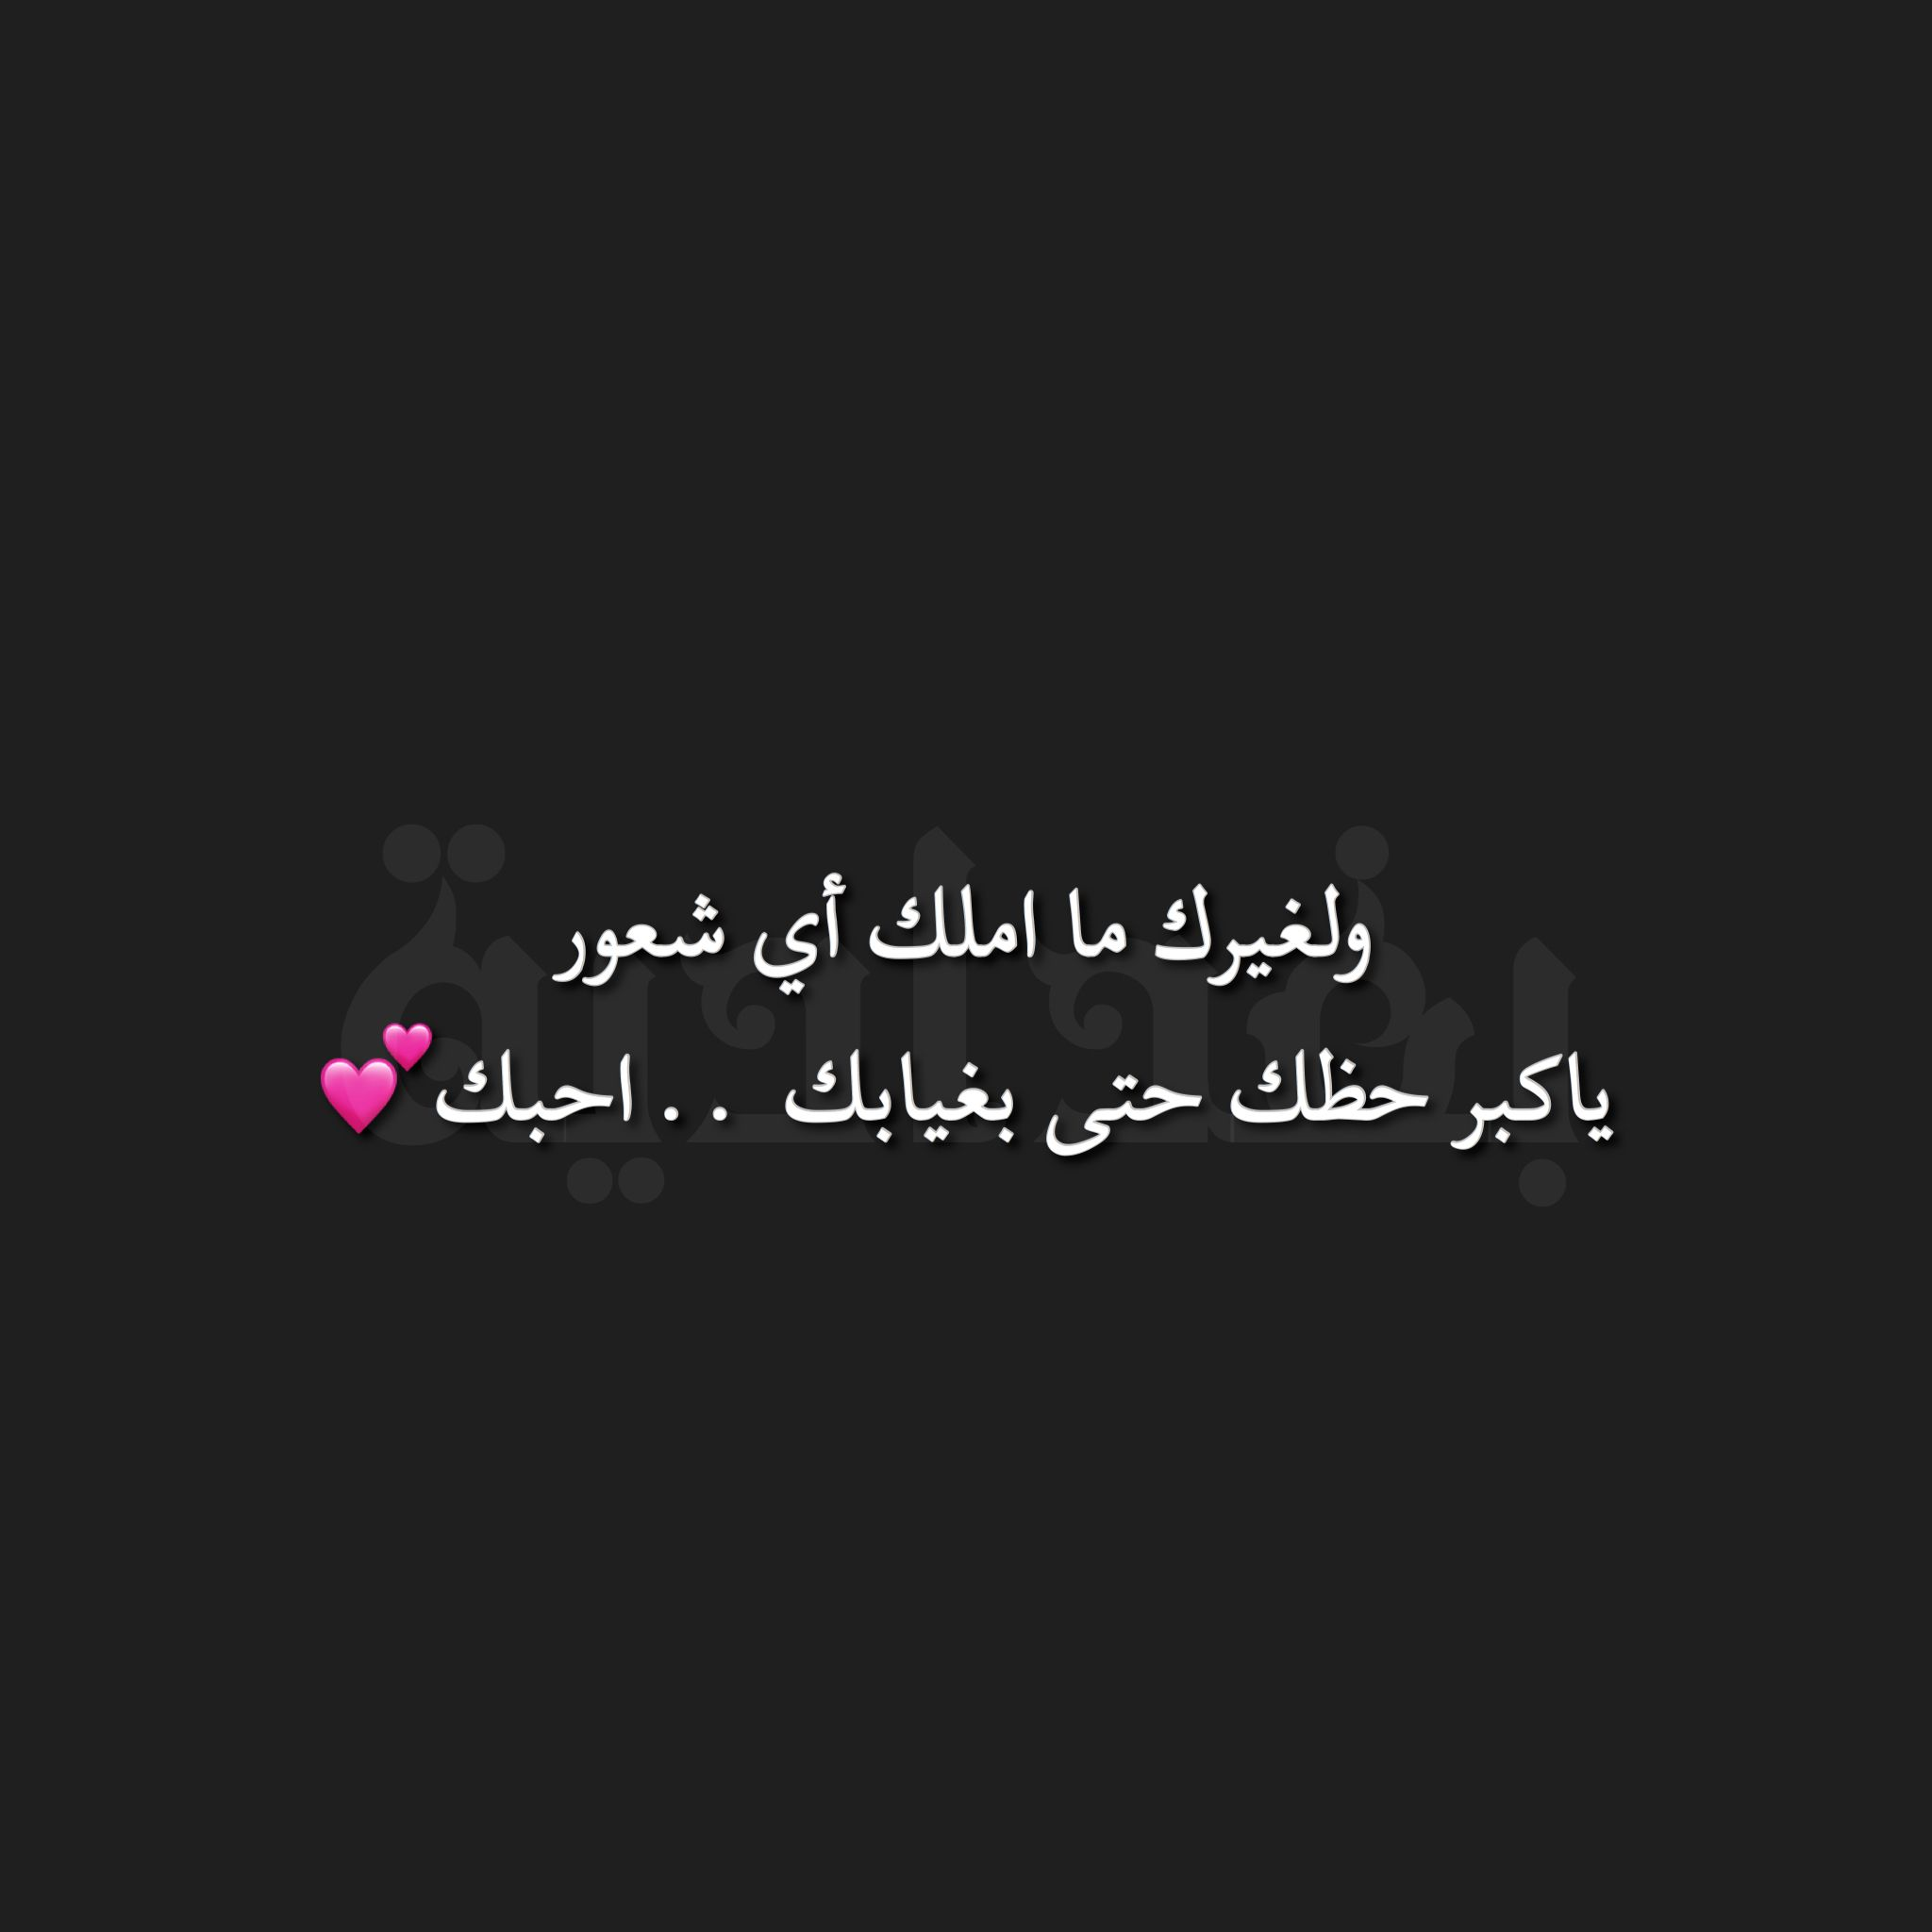 Pin By Sam K On رمزيات Arabic Love Quotes Love Words Inspirational Quotes